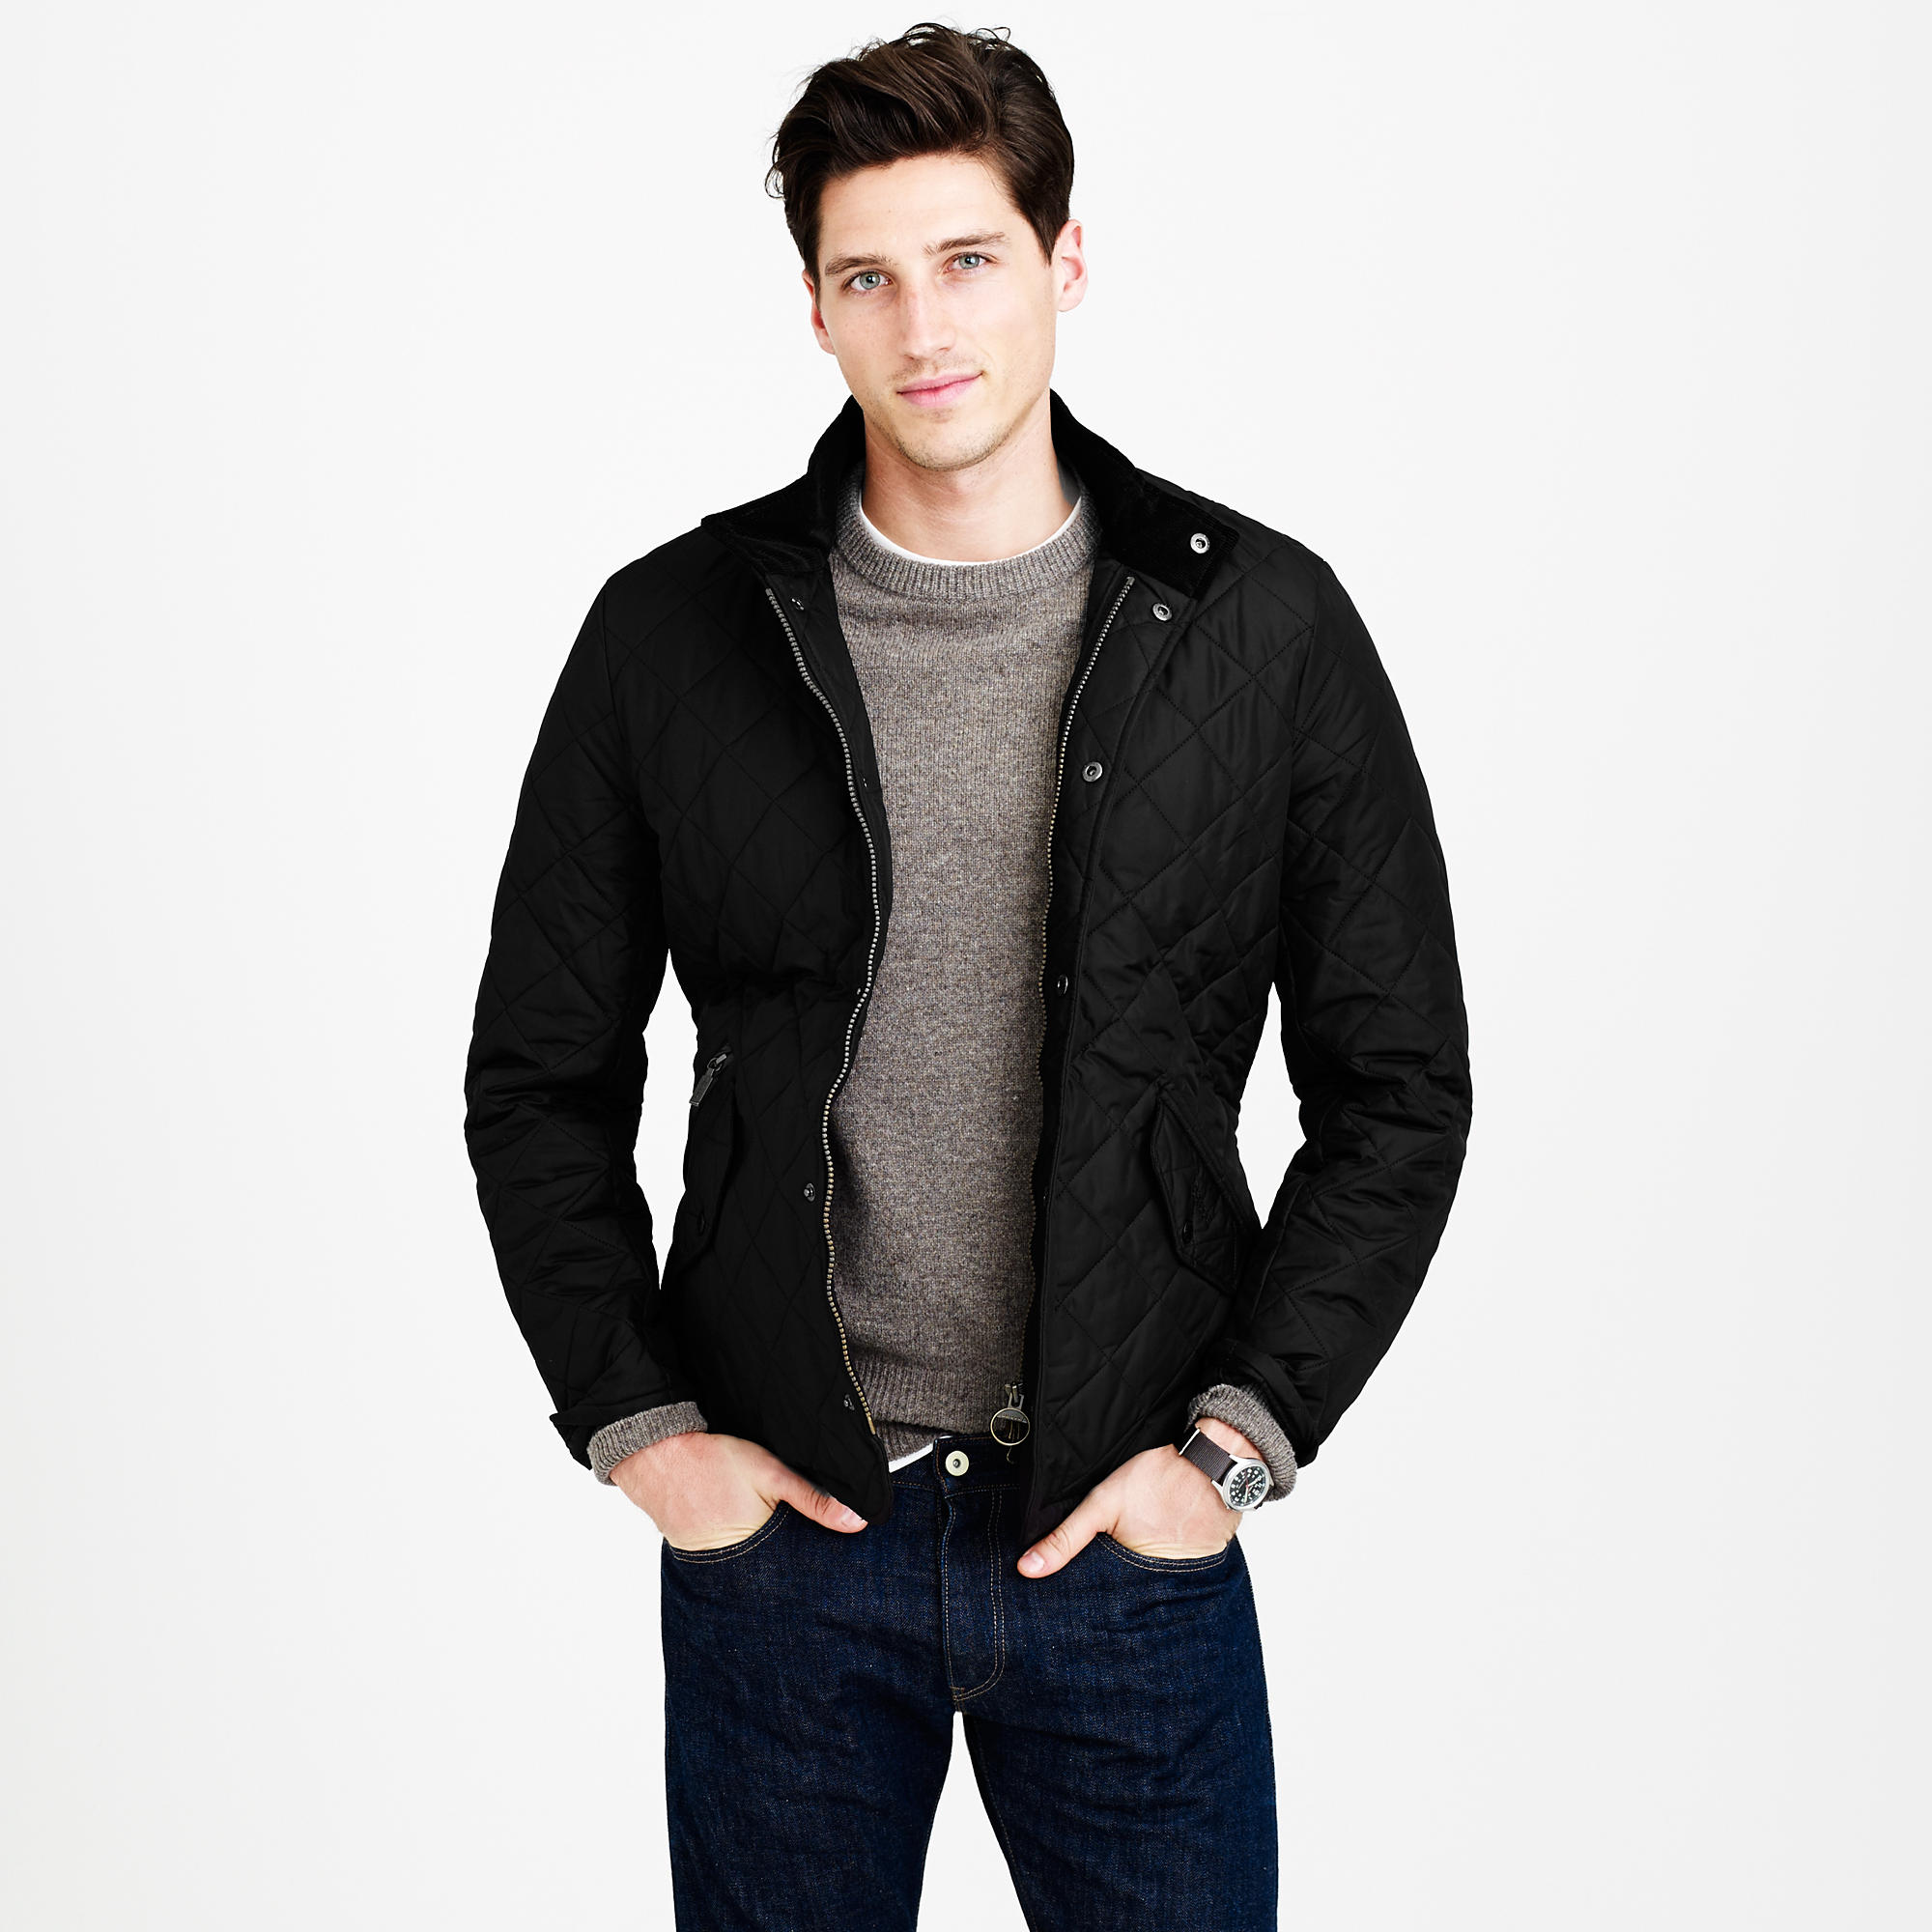 10 Fall Wardrobe Essentials For Men